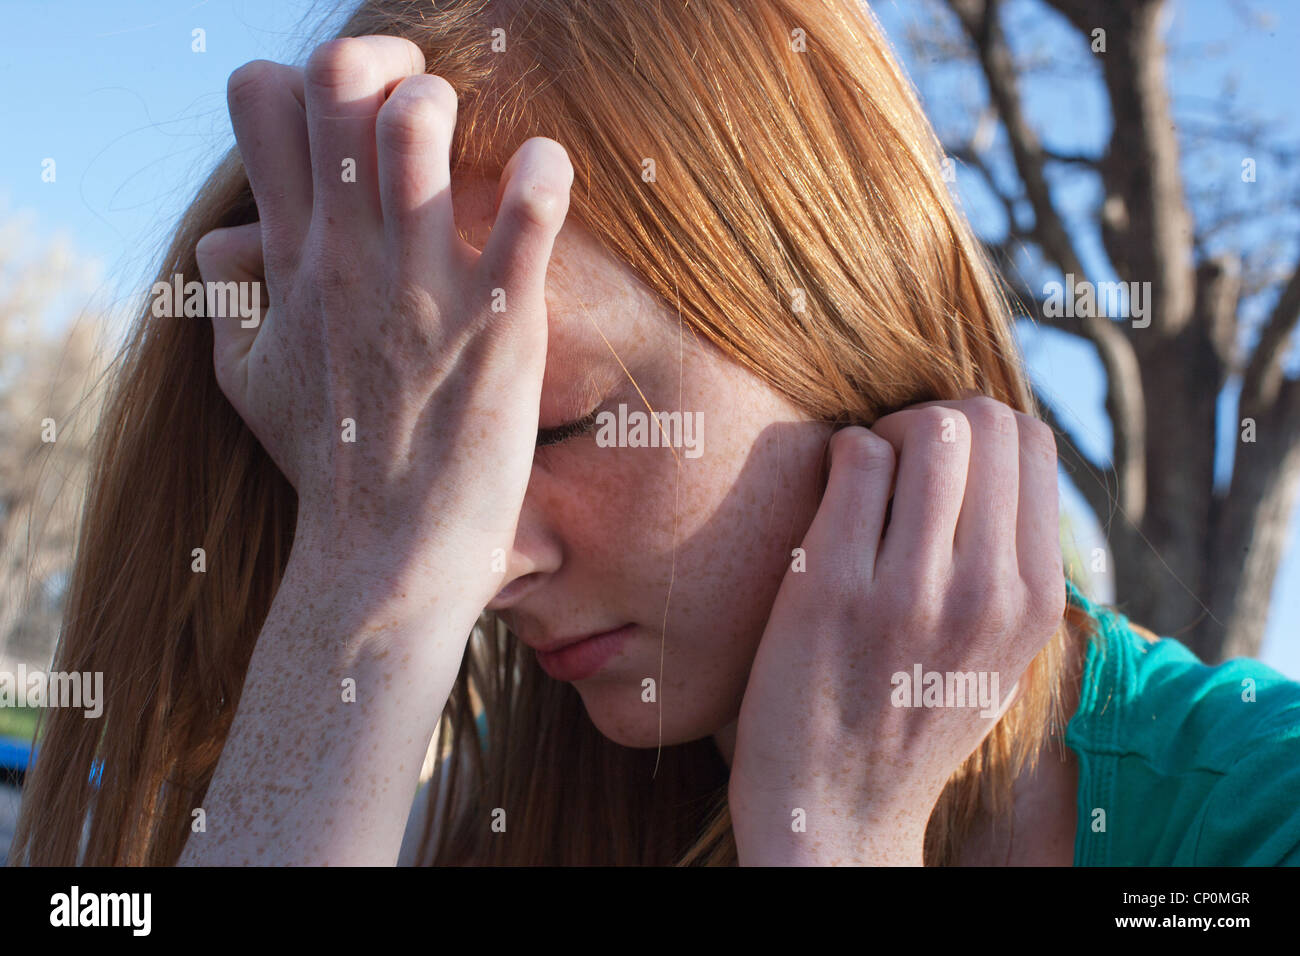 Close of a sixteen year old girl experiencing anxiety and covering her face with her hands outdoors. - Stock Image